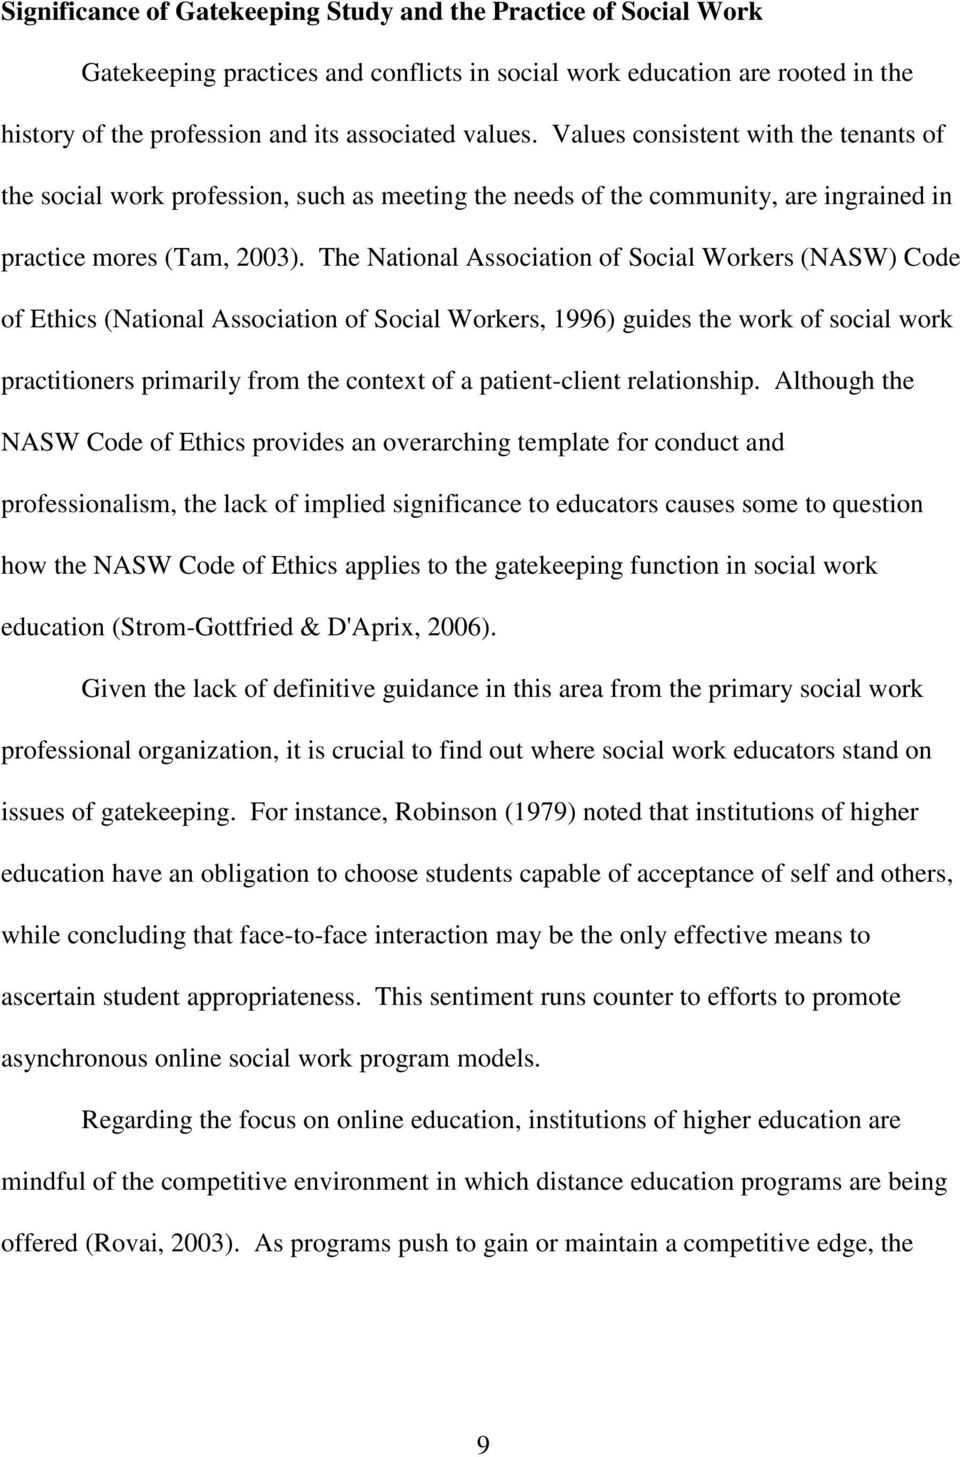 The National Association of Social Workers (NASW) Code of Ethics (National Association of Social Workers, 1996) guides the work of social work practitioners primarily from the context of a